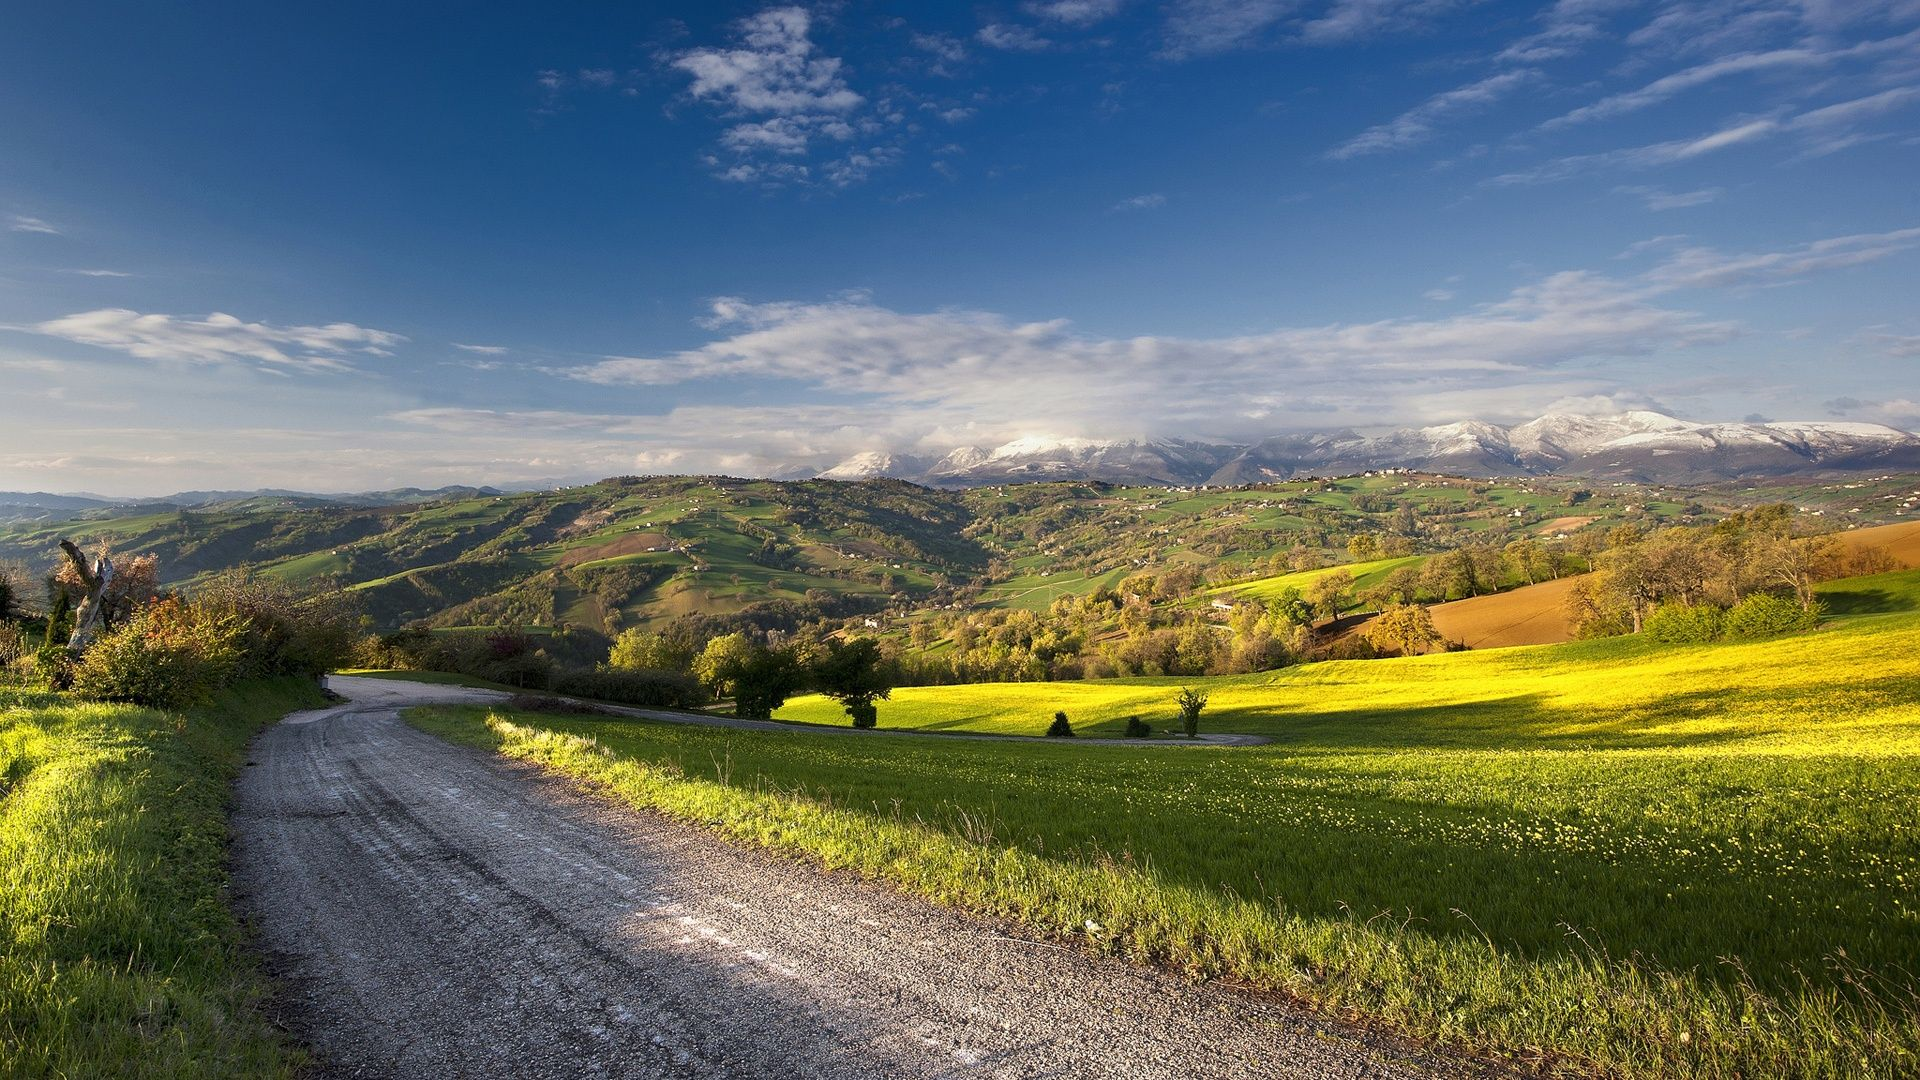 Countryside Farms Wallpaper HD With Wallpapers Wide Resolution 1920x1080 px 1.05 MB | IMMAGINI ...